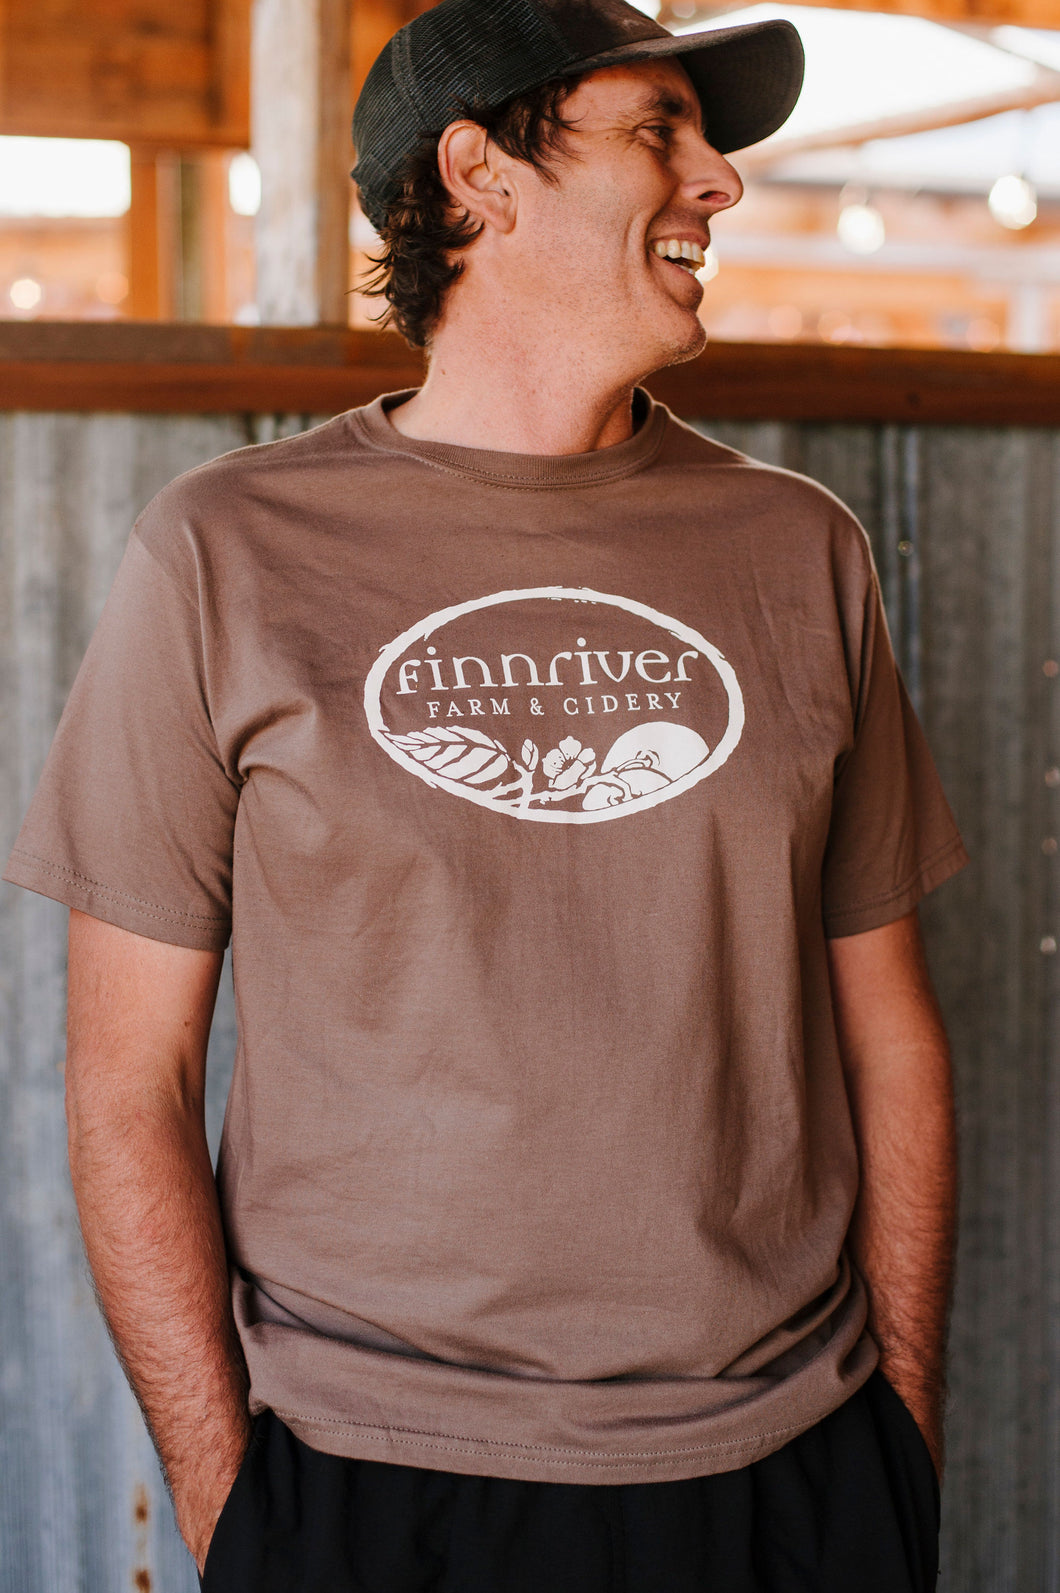 Finnriver Unisex T-shirt with Logo